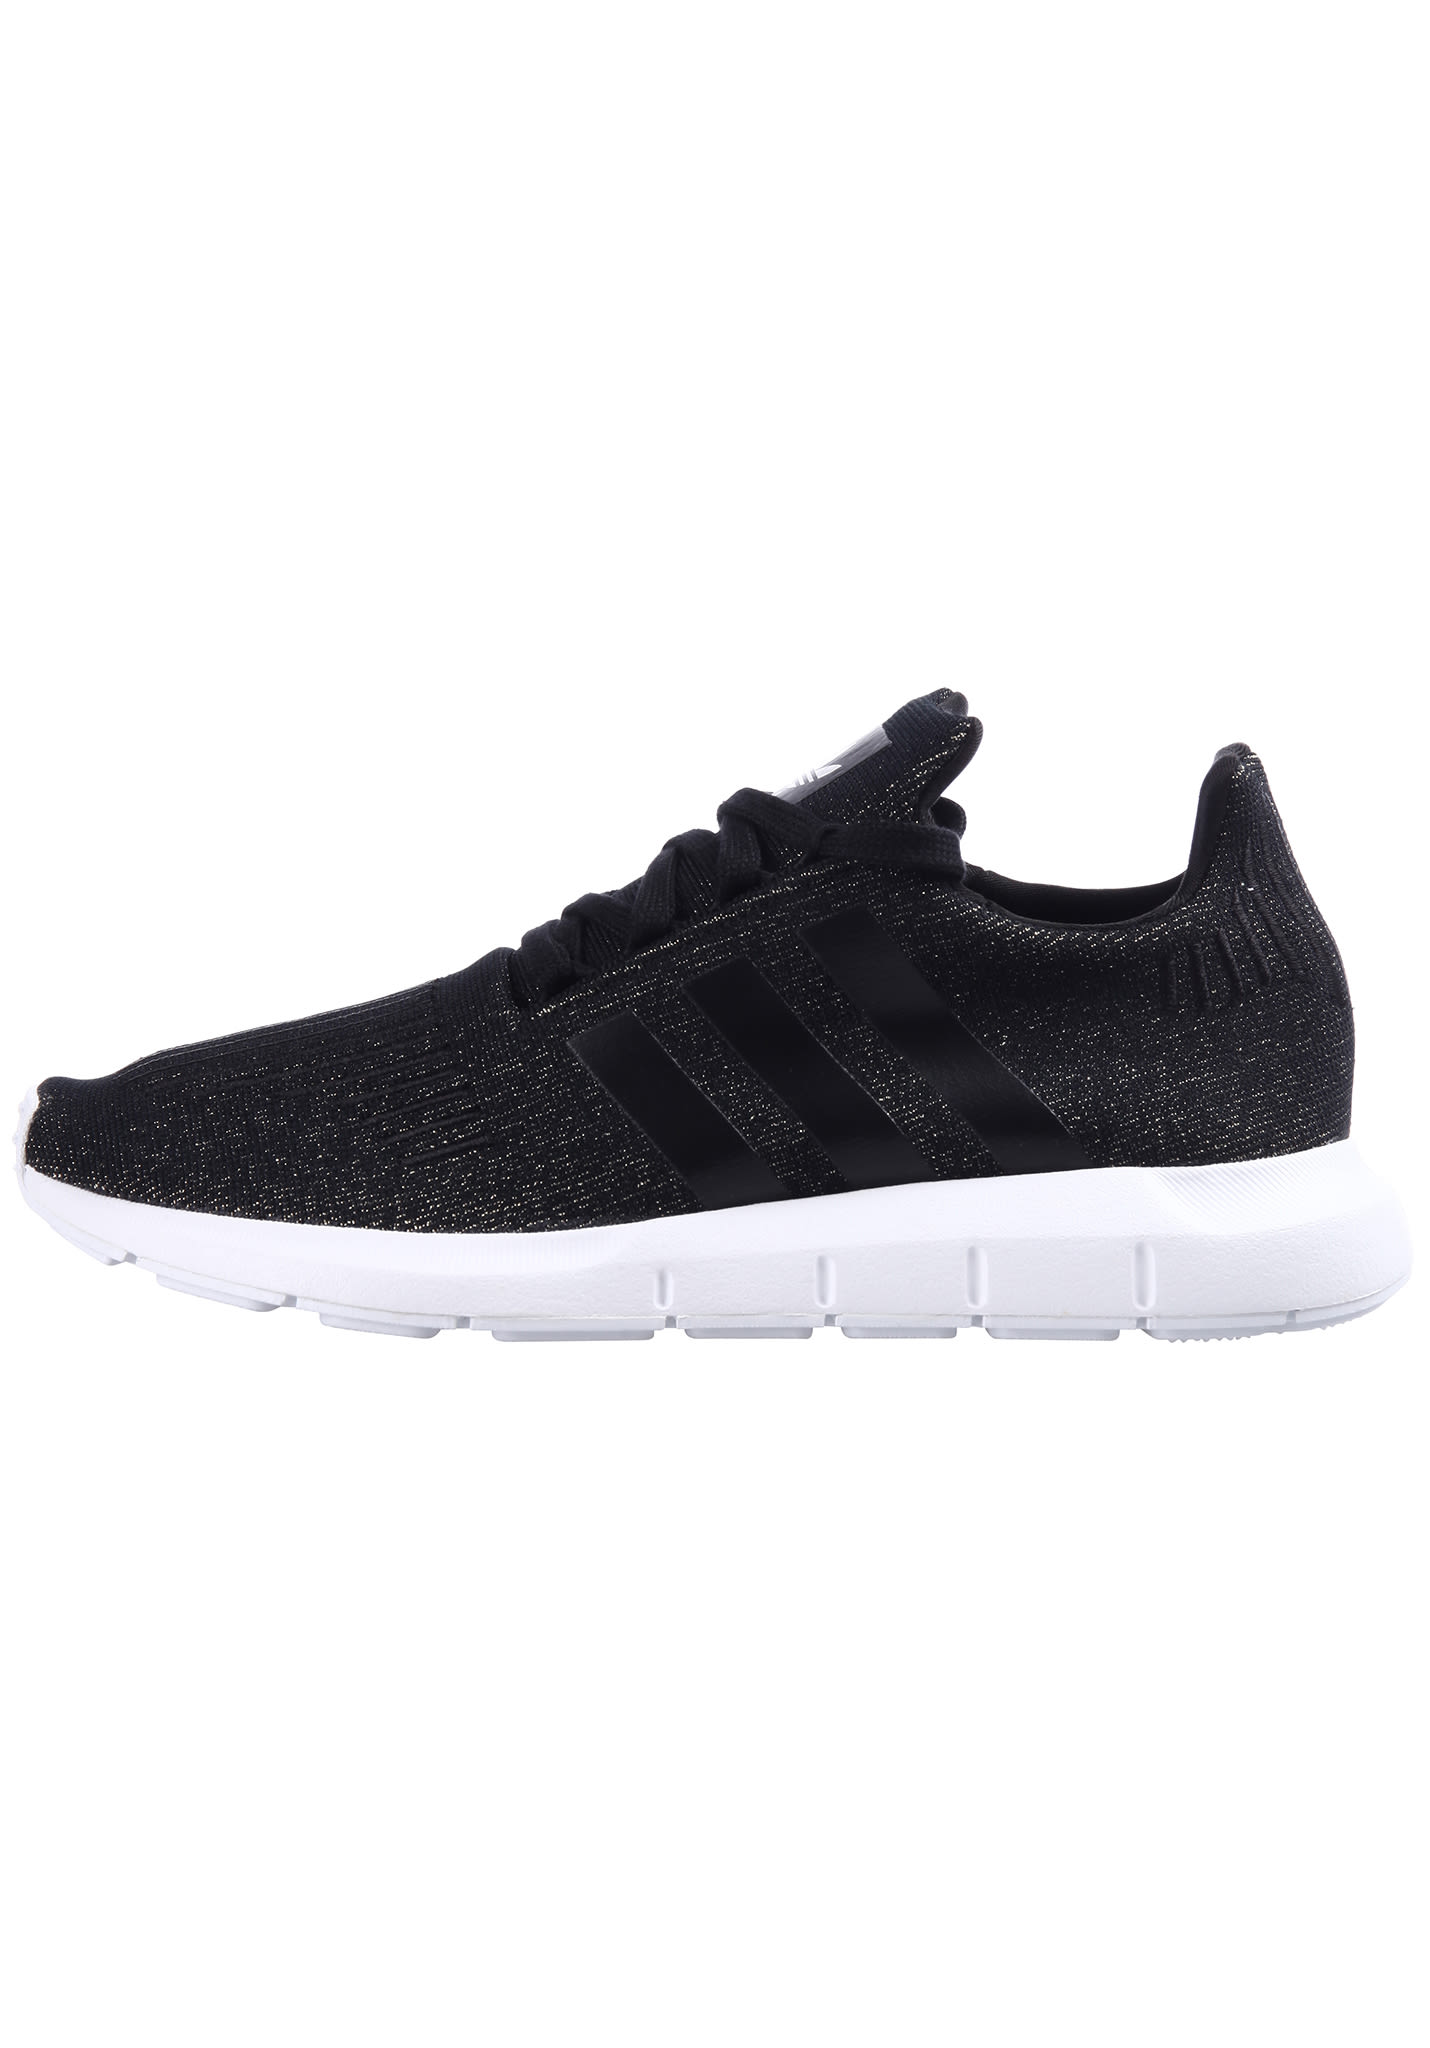 df79c20ad3605 ADIDAS ORIGINALS Swift Run - Sneakers for Women - Black - Planet Sports